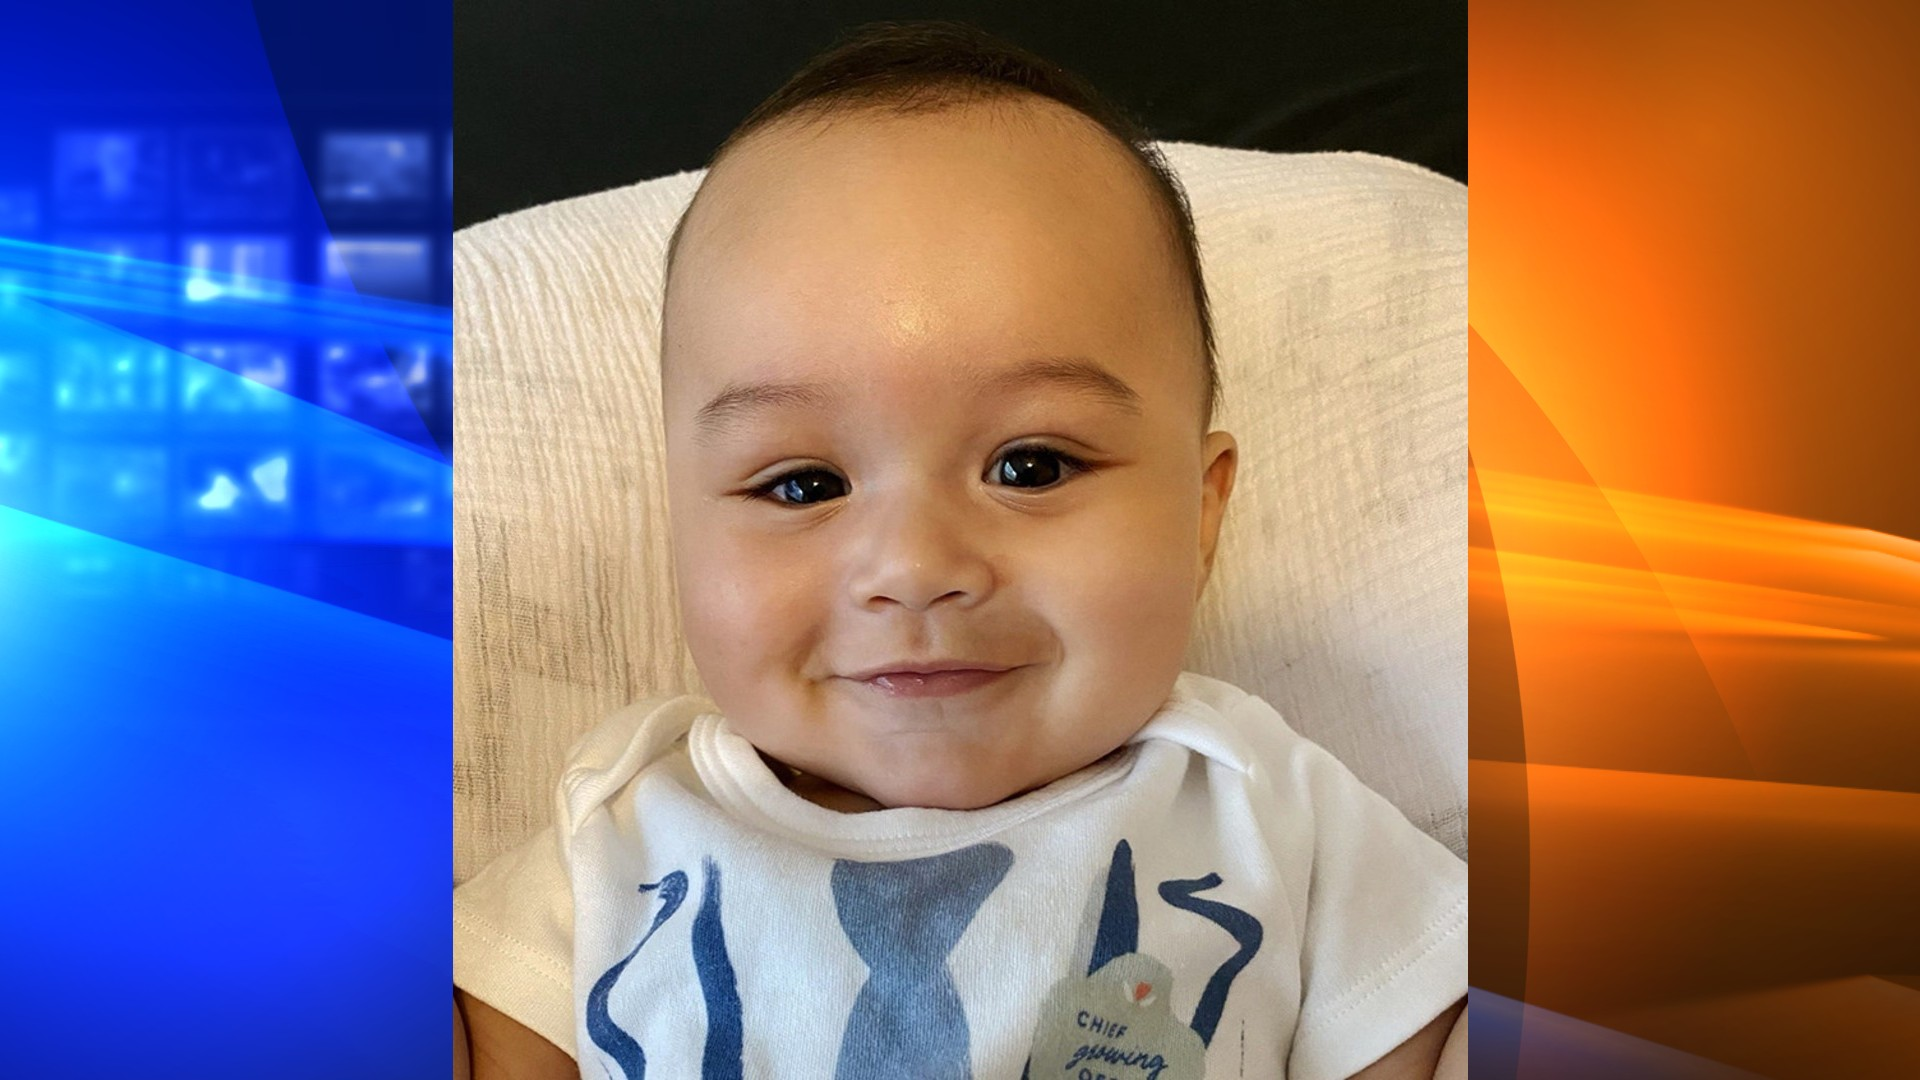 Gerber released this photo of 4-month-old Zane Kahin, of Winter Park, Florida.